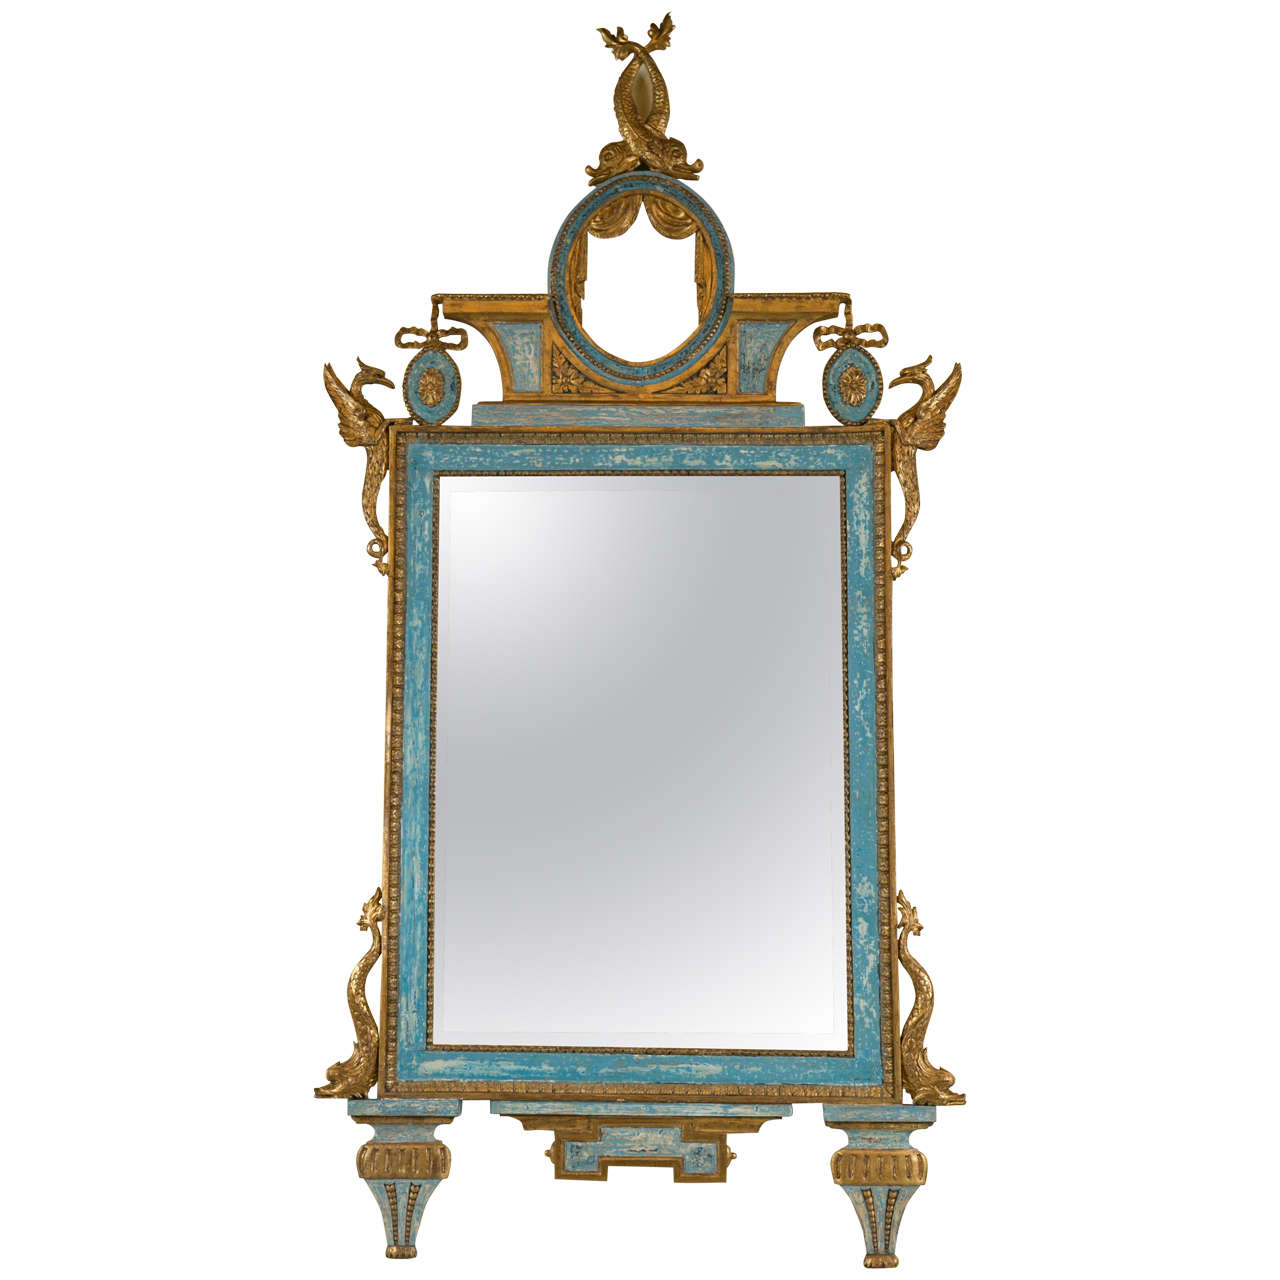 Gilt and blue painted italian looking glass mirror for for Looking for wall mirrors